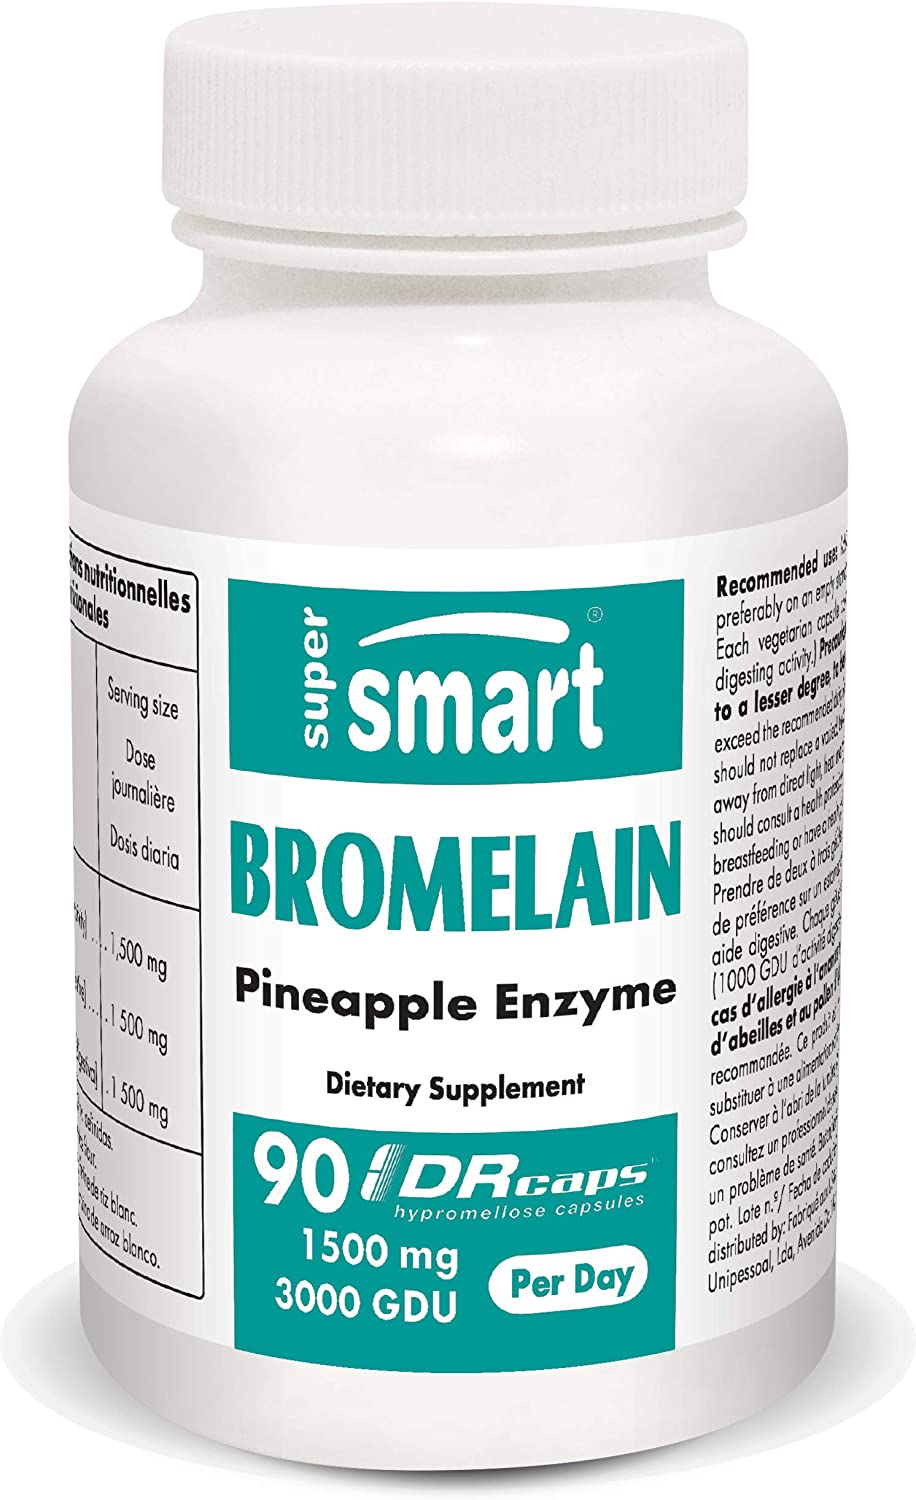 Supersmart - Bromelain 1500 mg 3000 GDU Per Serving - Enzymes Extracted from Pineapple Roots - Anti Inflammatory Supplement & Digestive System Booster | Non-GMO & Gluten Free - 90 DR Capsules